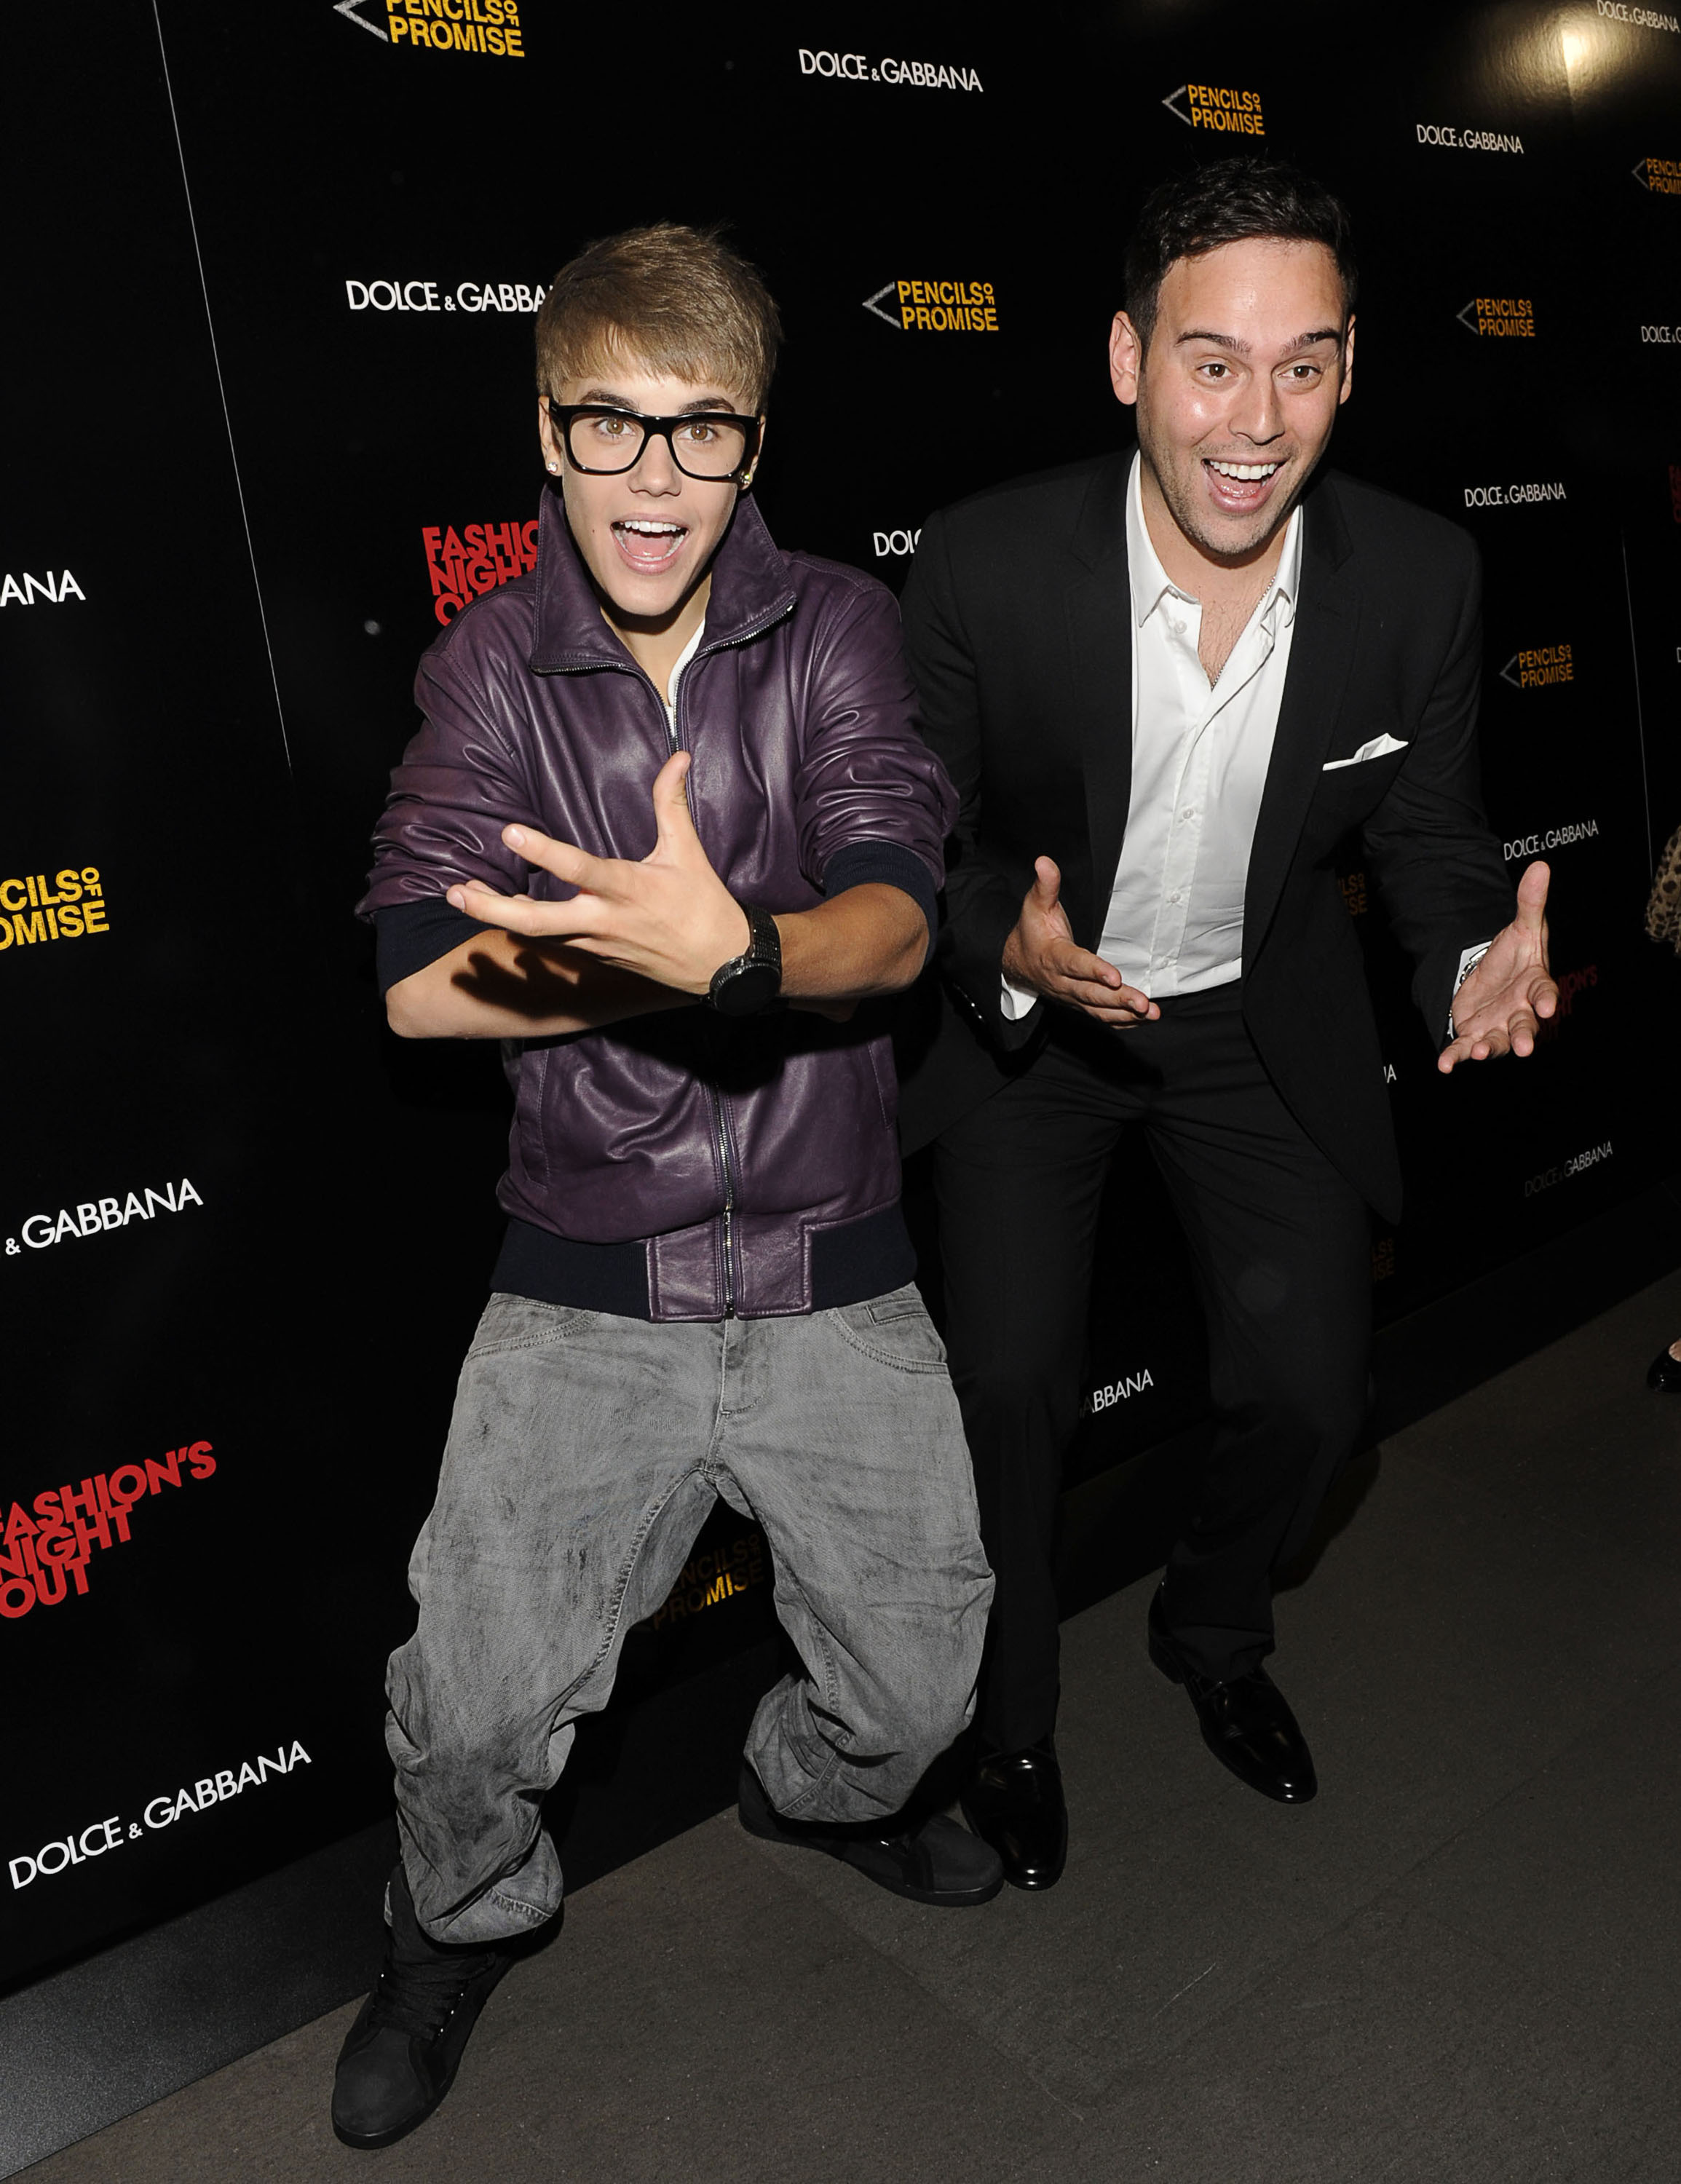 Justin Bieber and Scooter Braun attend the Dolce & Gabbana Boutique on September 8, 2011 in New York City.